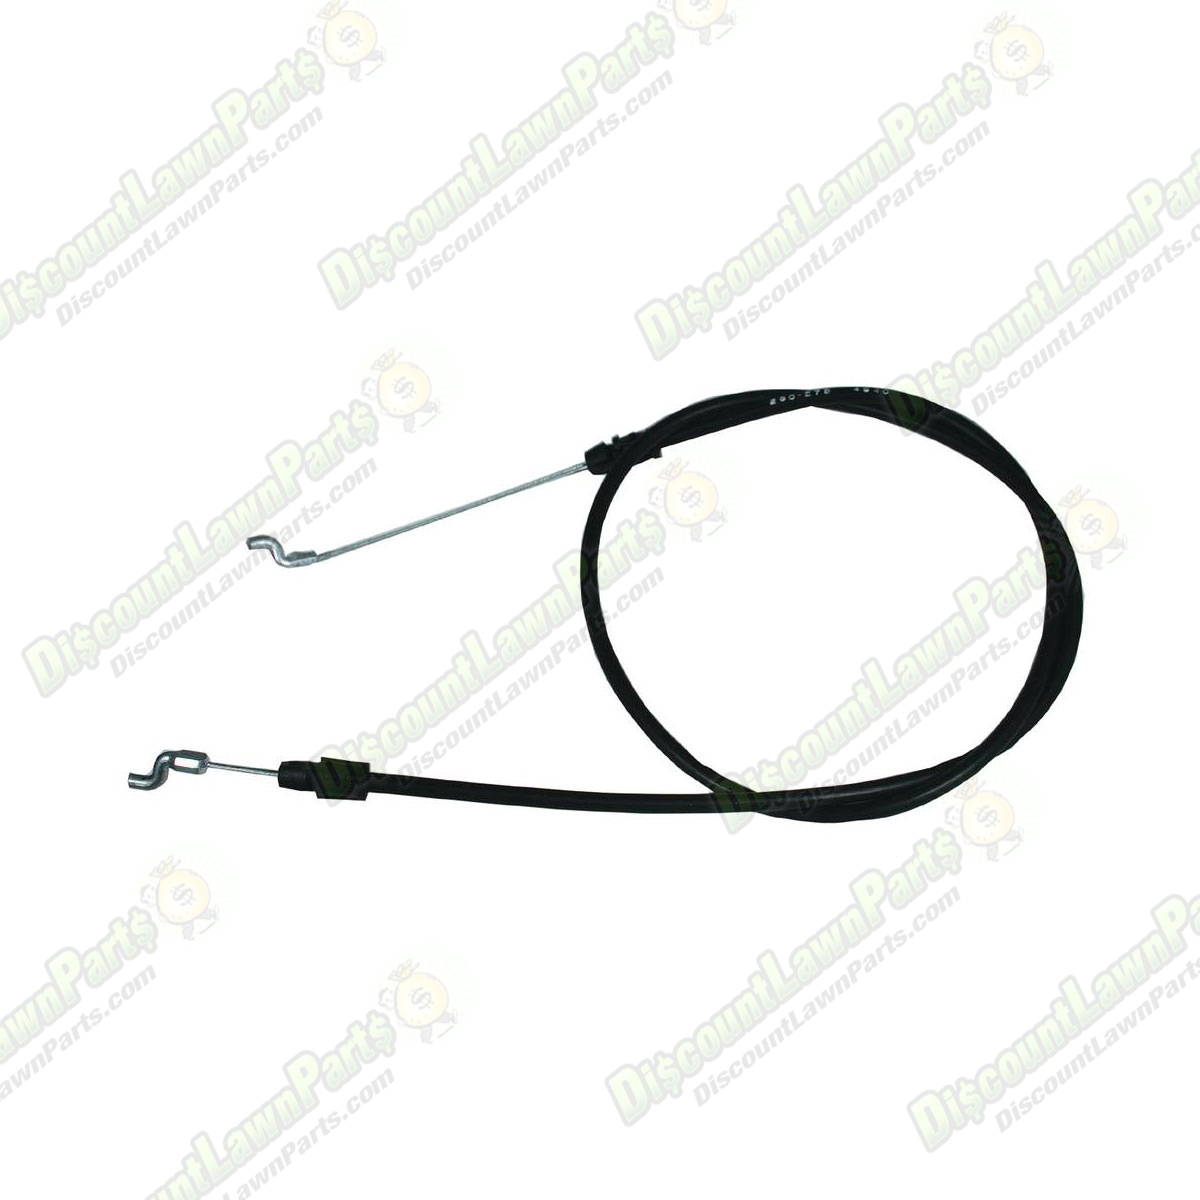 Lawn Mower Parts & Accessories Control Cable 290 641 for MTD 946-0957 Lawn Mowers